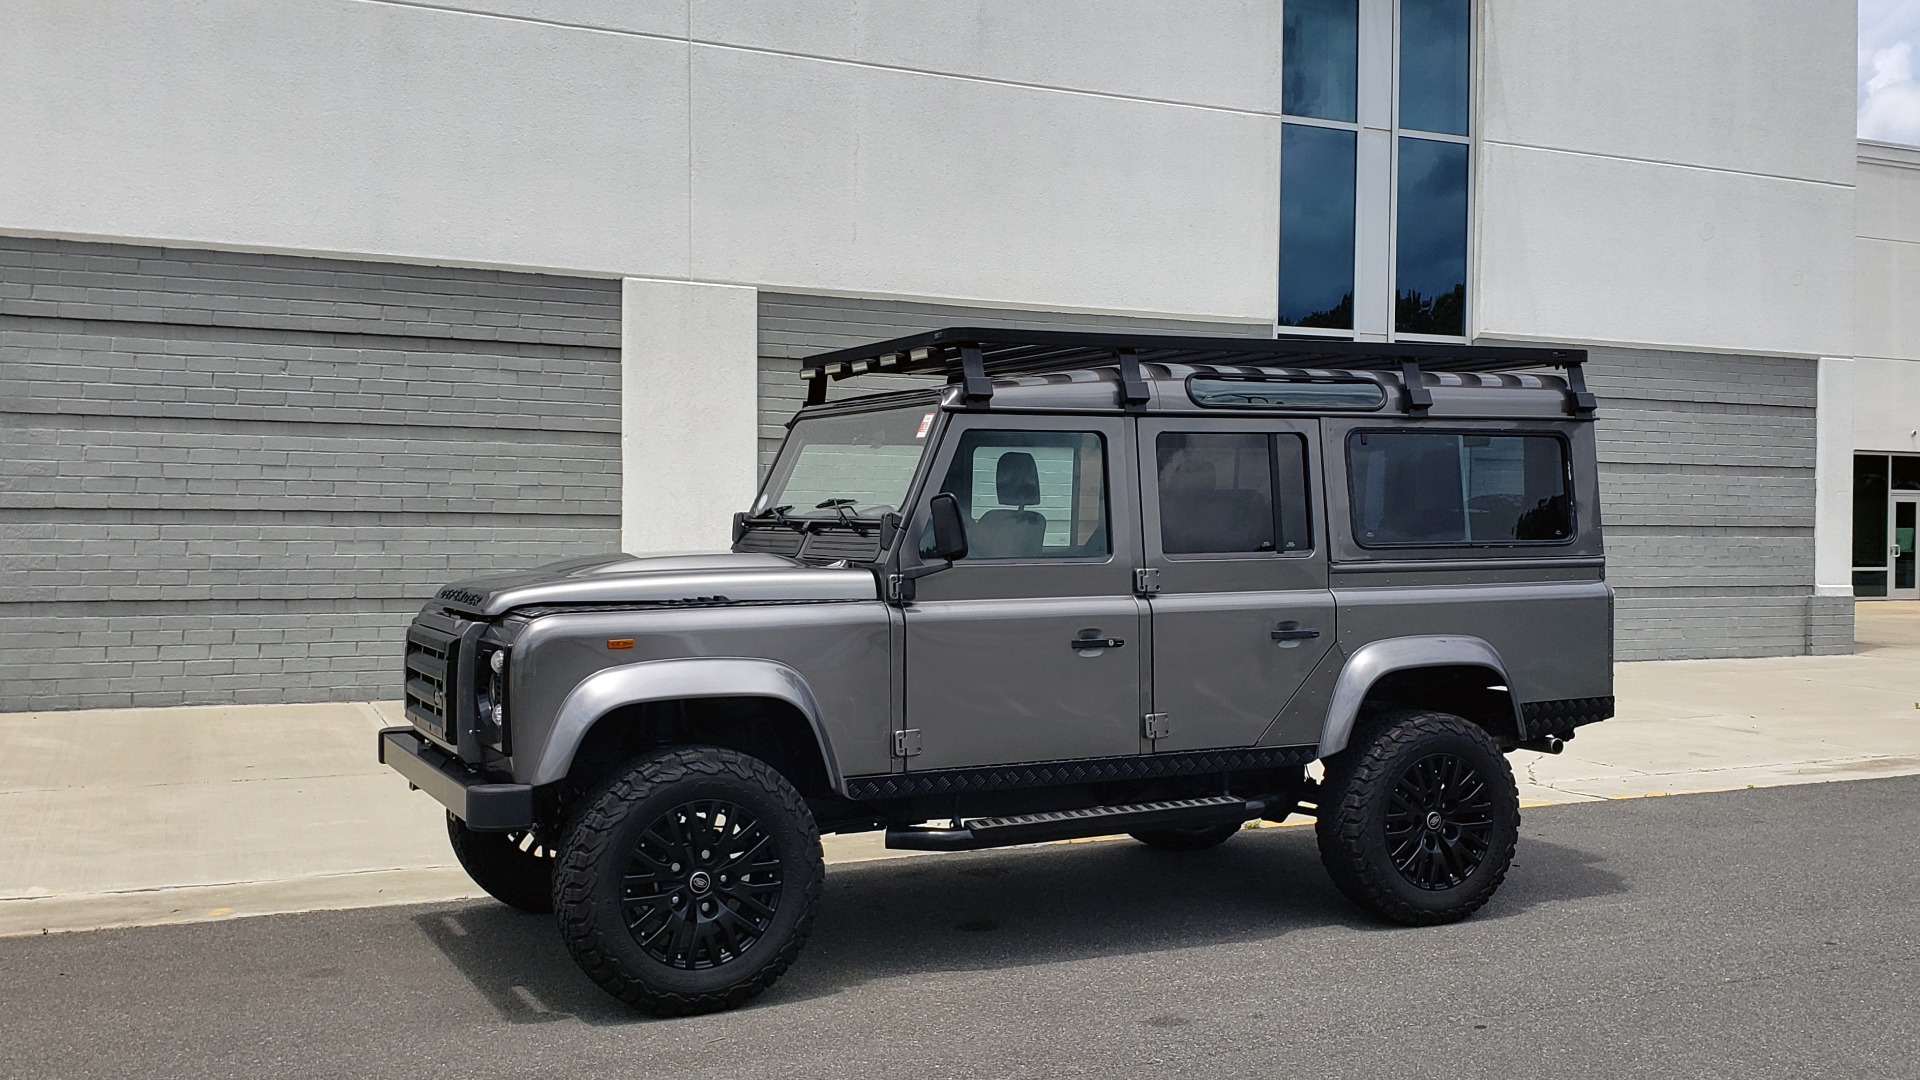 Used 1988 Land Rover DEFENDER 110 CUSTOM 4X4 / LS V8 / PUSH BUTTON AUTO / LEATHER / ROOF RACK for sale $147,888 at Formula Imports in Charlotte NC 28227 2